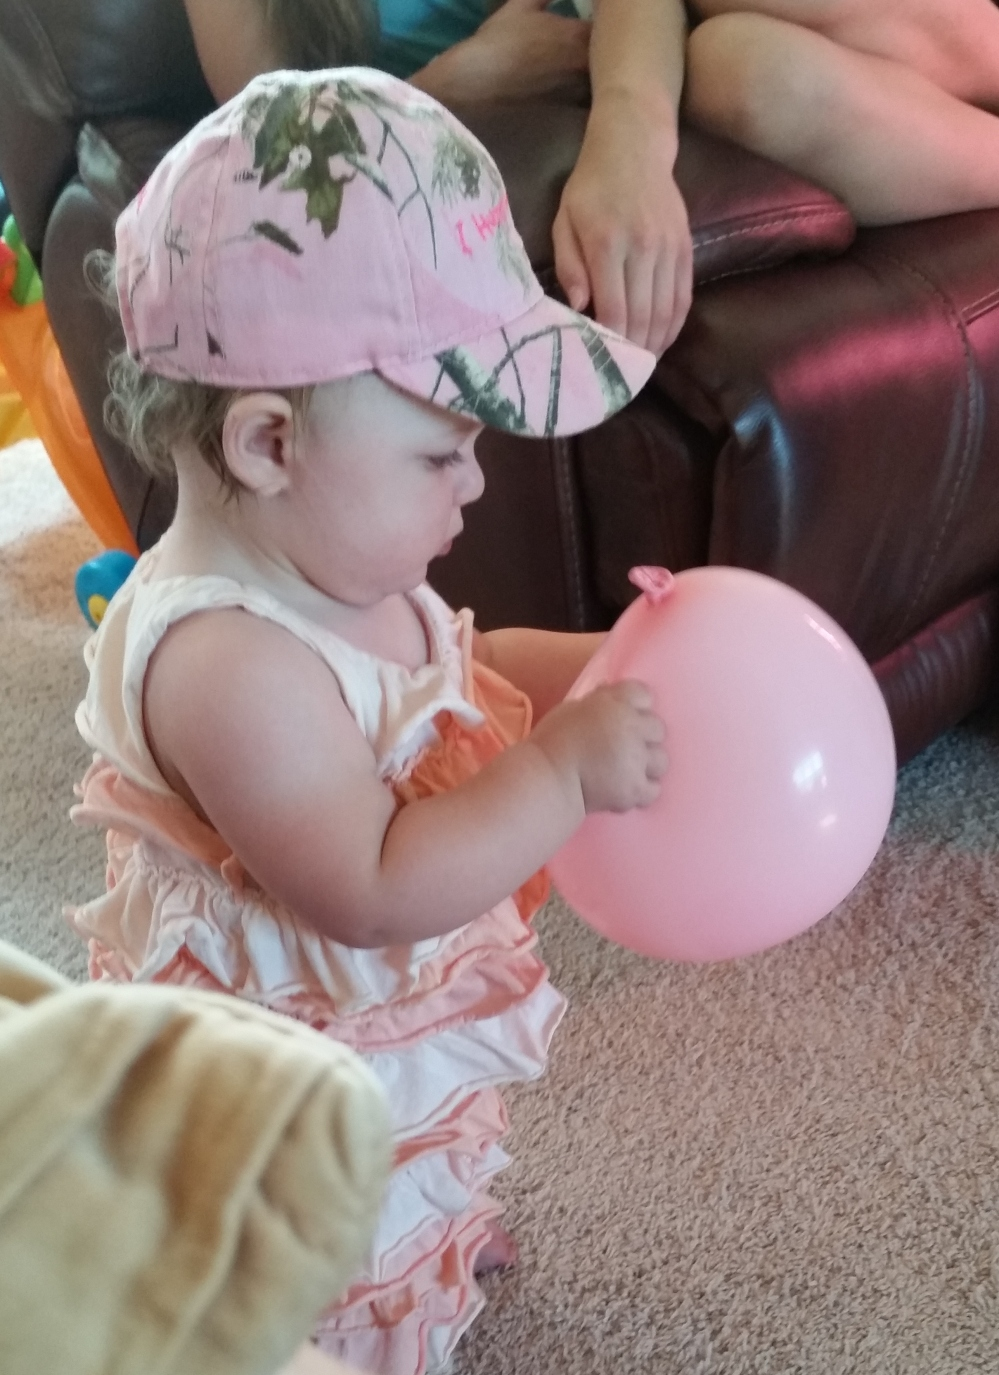 Rosemary explores a balloon - the texture, how she can pull its 'skin' apart